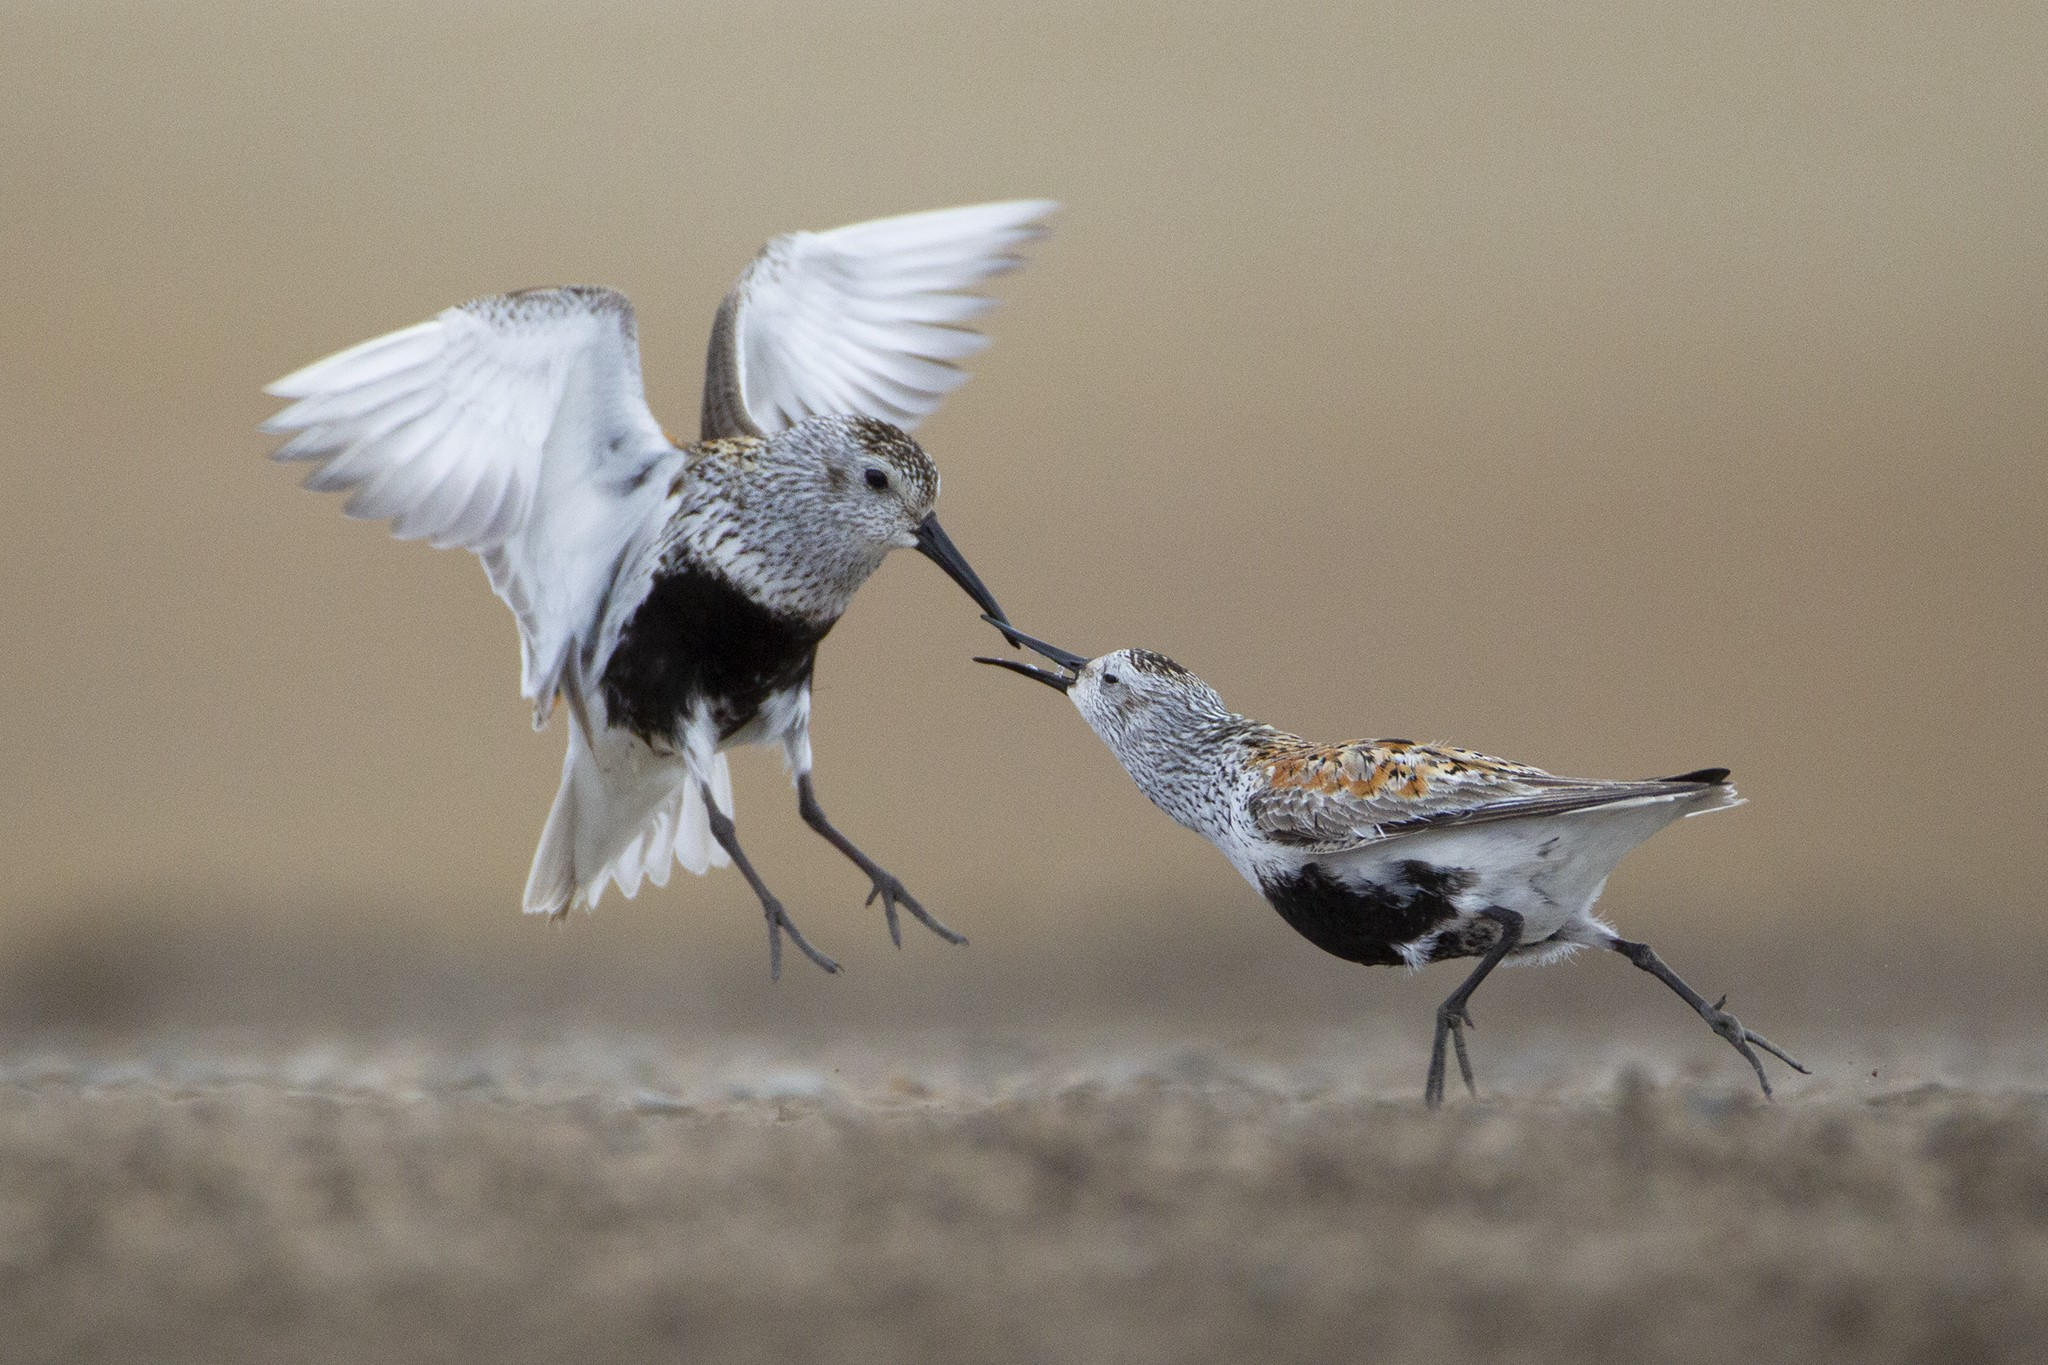 Two Dunlin sandpipers chase one another on a tundra road